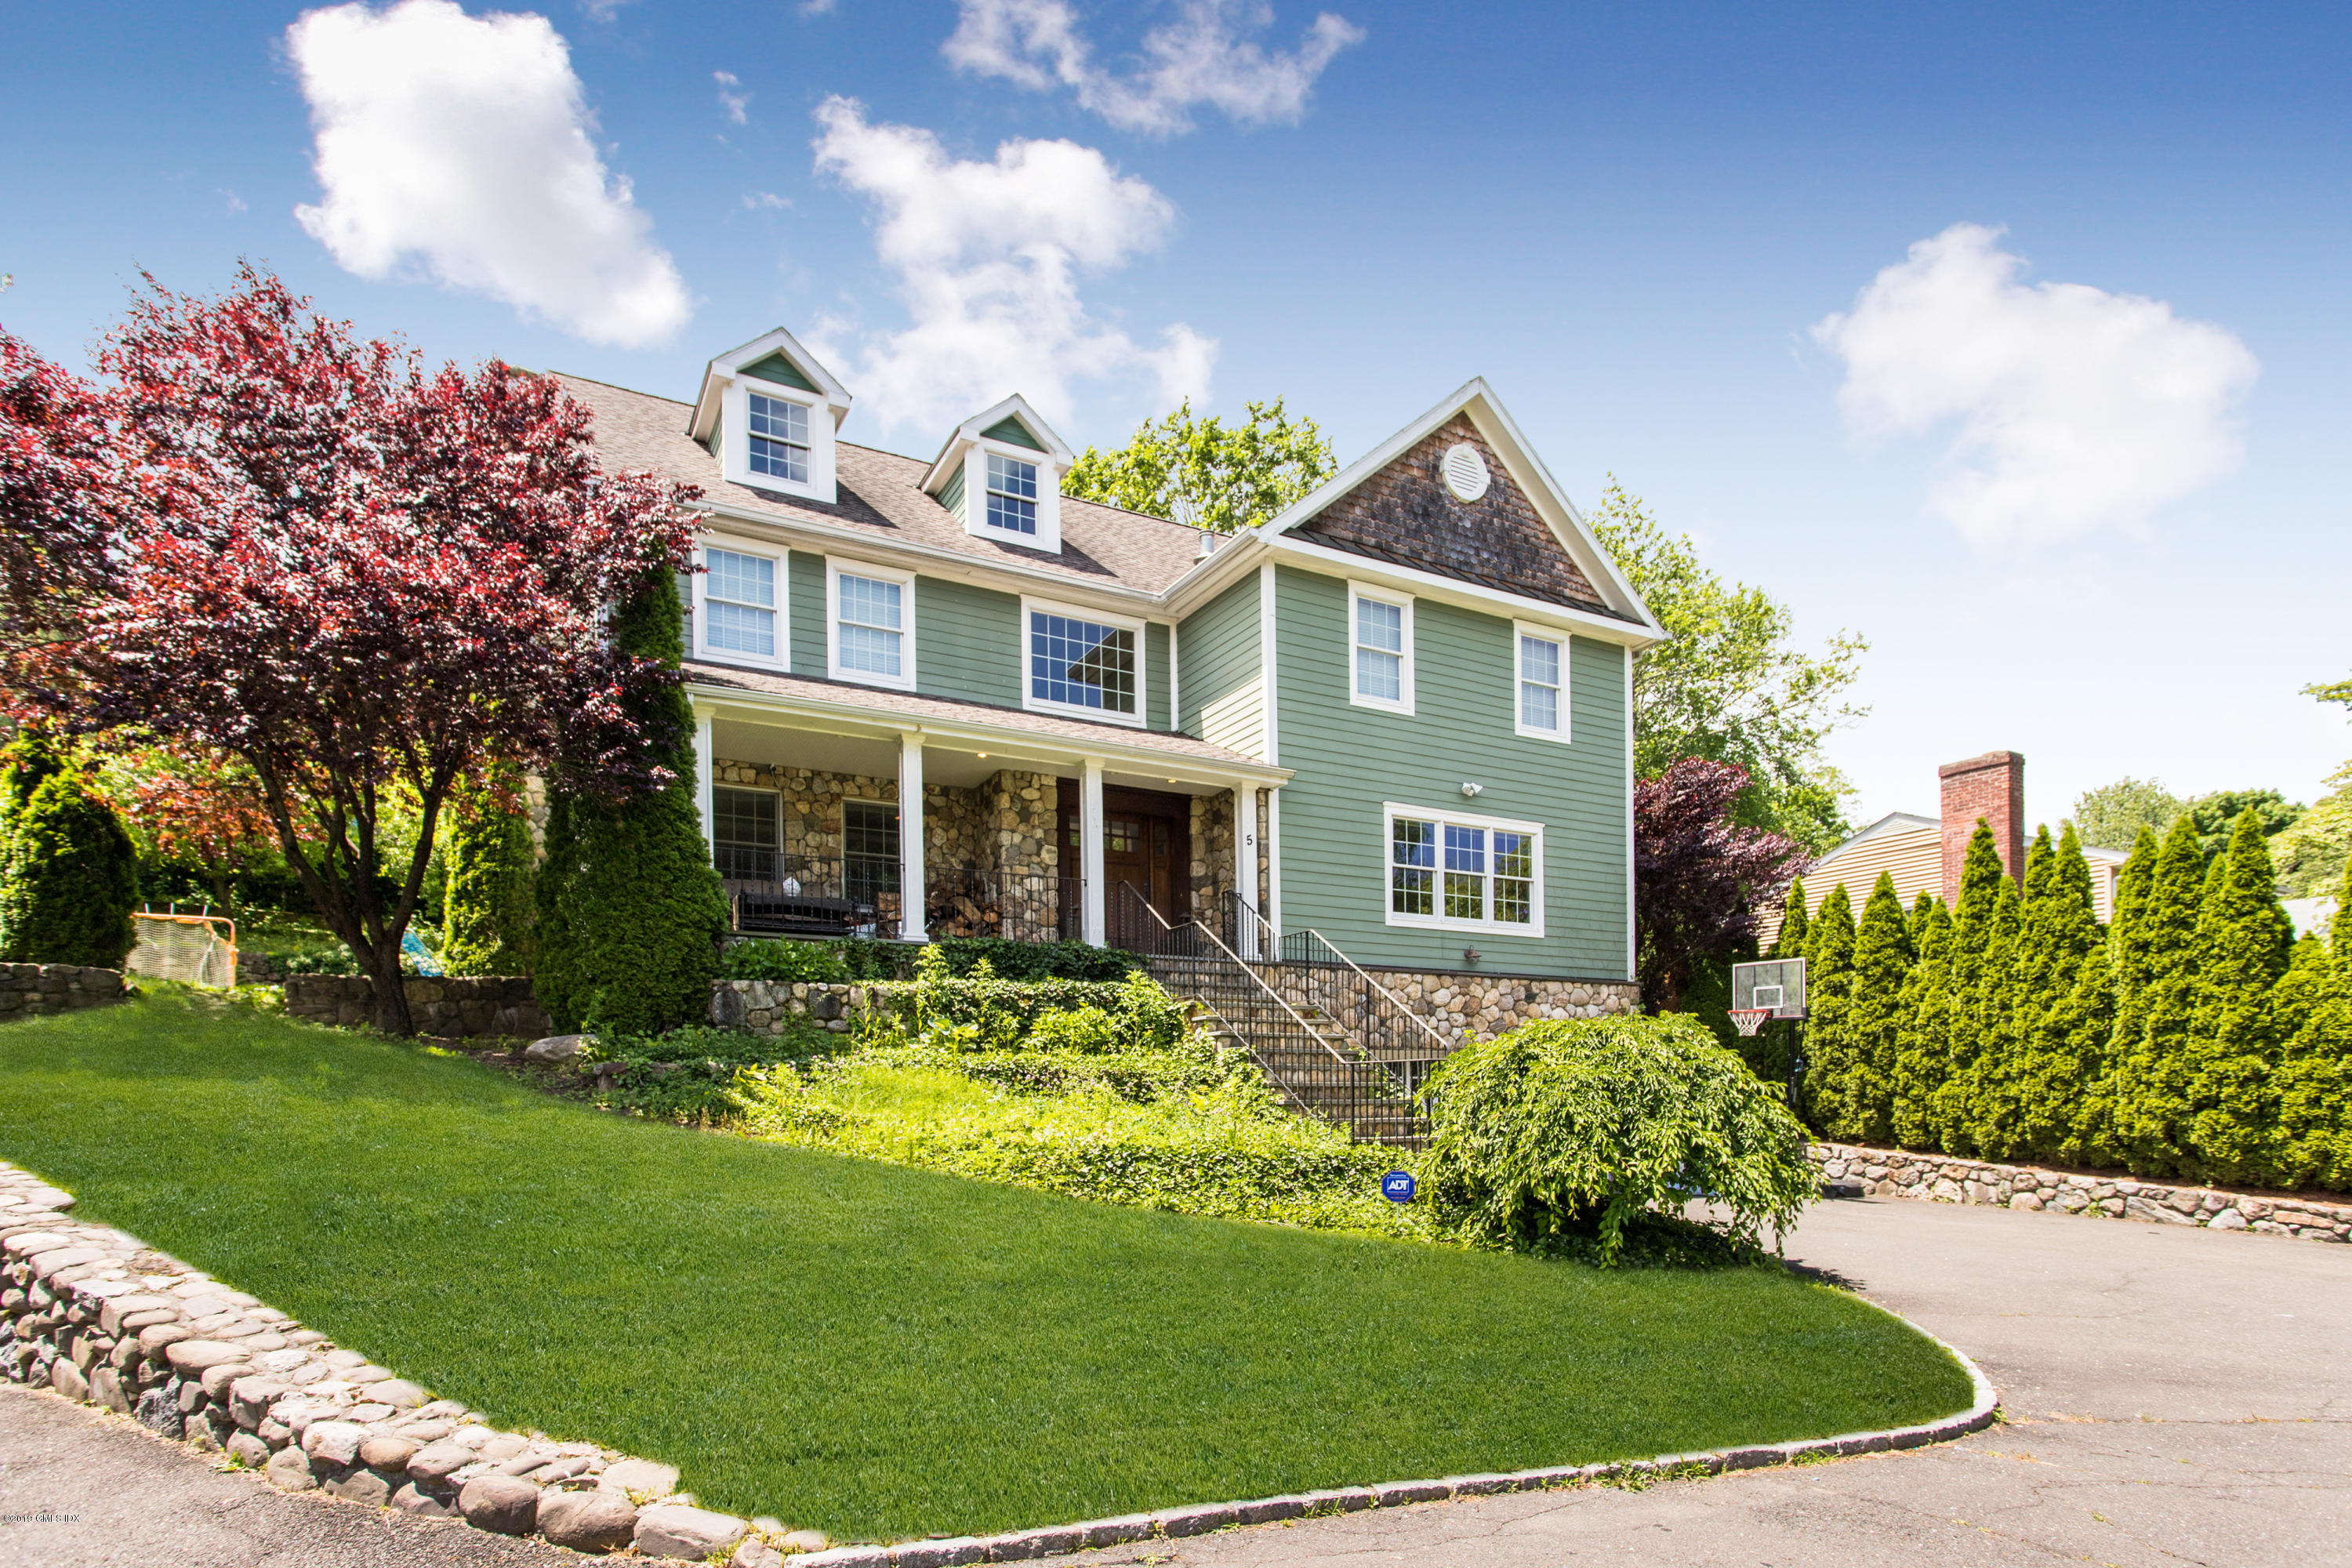 5 Comly Terrace,Greenwich,Connecticut 06831,5 Bedrooms Bedrooms,4 BathroomsBathrooms,Single family,Comly,106969